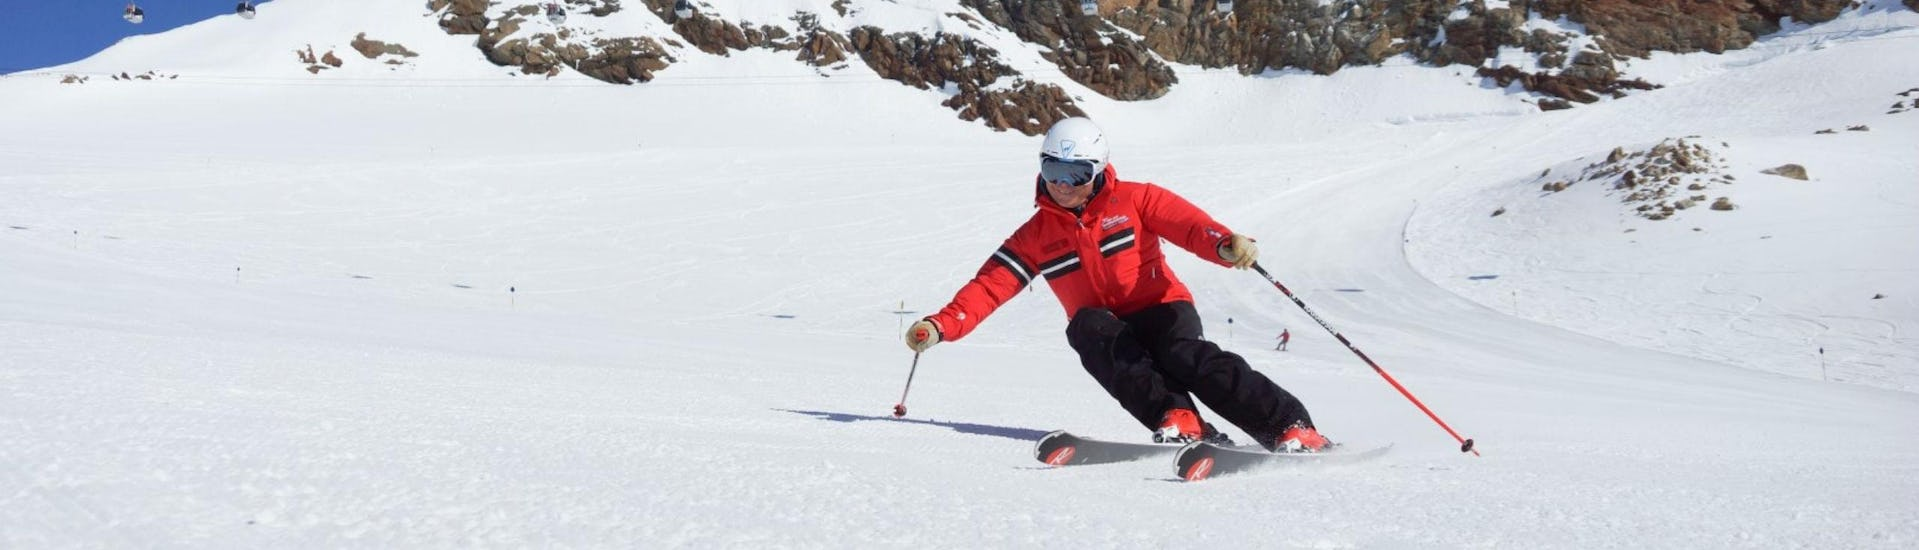 A ski instructor from the ski school Ski- und Snowboardschule Vacancia is demonstrating the correct skiing technique during one of the Ski Lessons for Adults - All Levels.